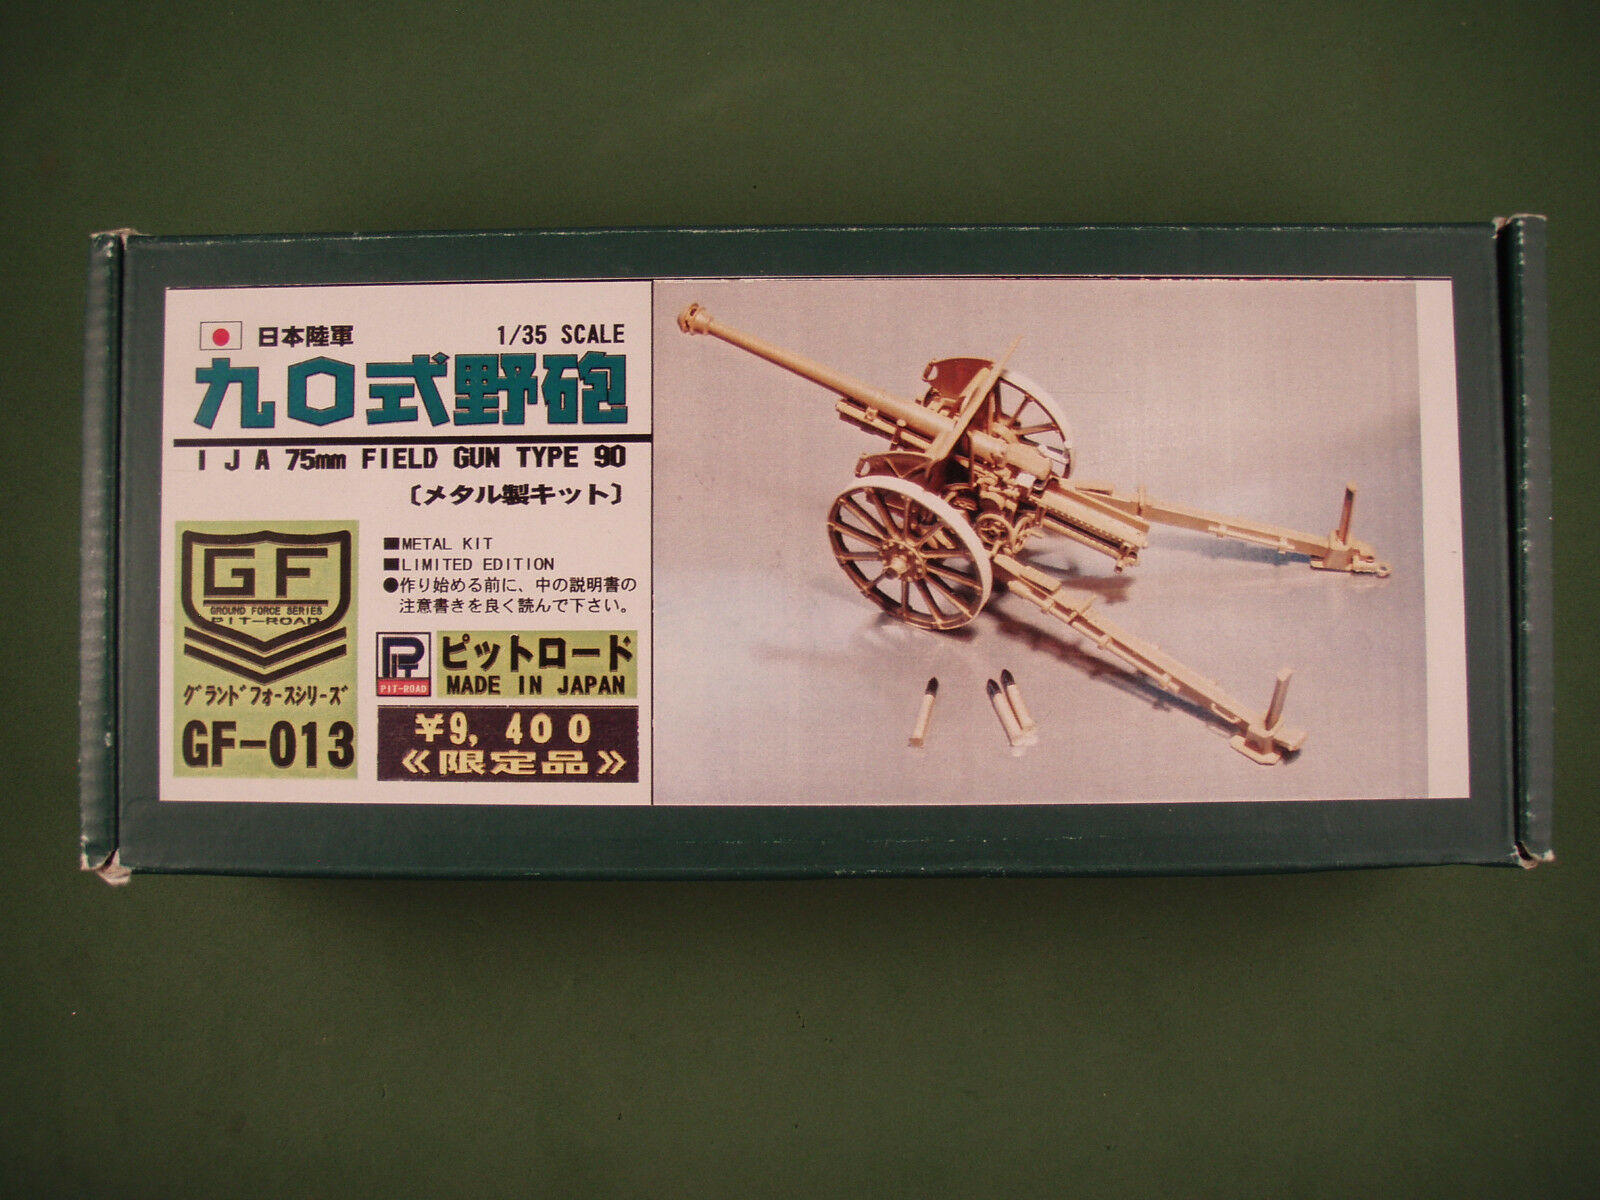 Pit Road 1 35 Metal Kit Modelo Ija Type 90 75mm Field Gun GF-013